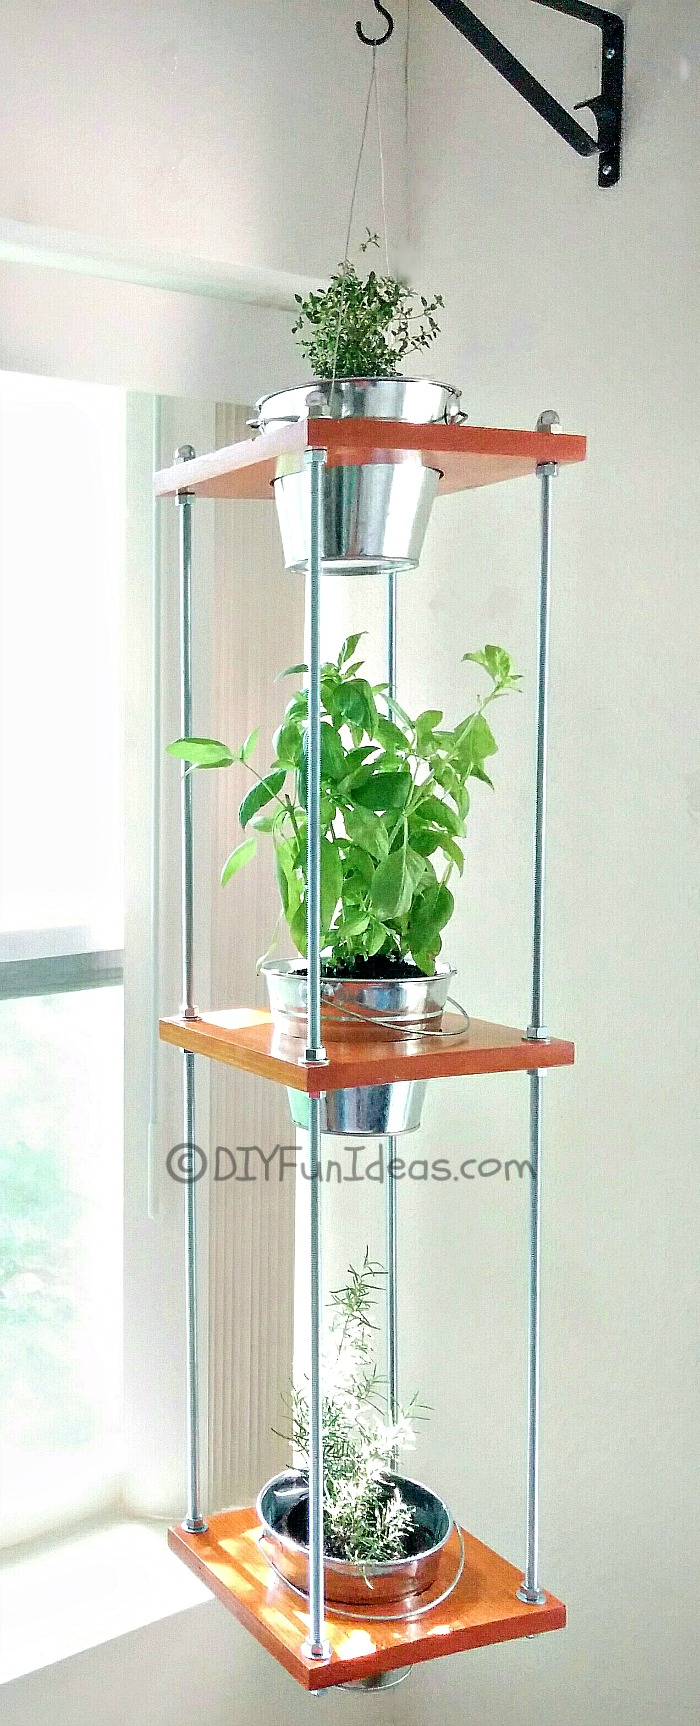 DIY HANGING HERB GARDEN...Industrial Style - Do-It-Yourself Fun Ideas